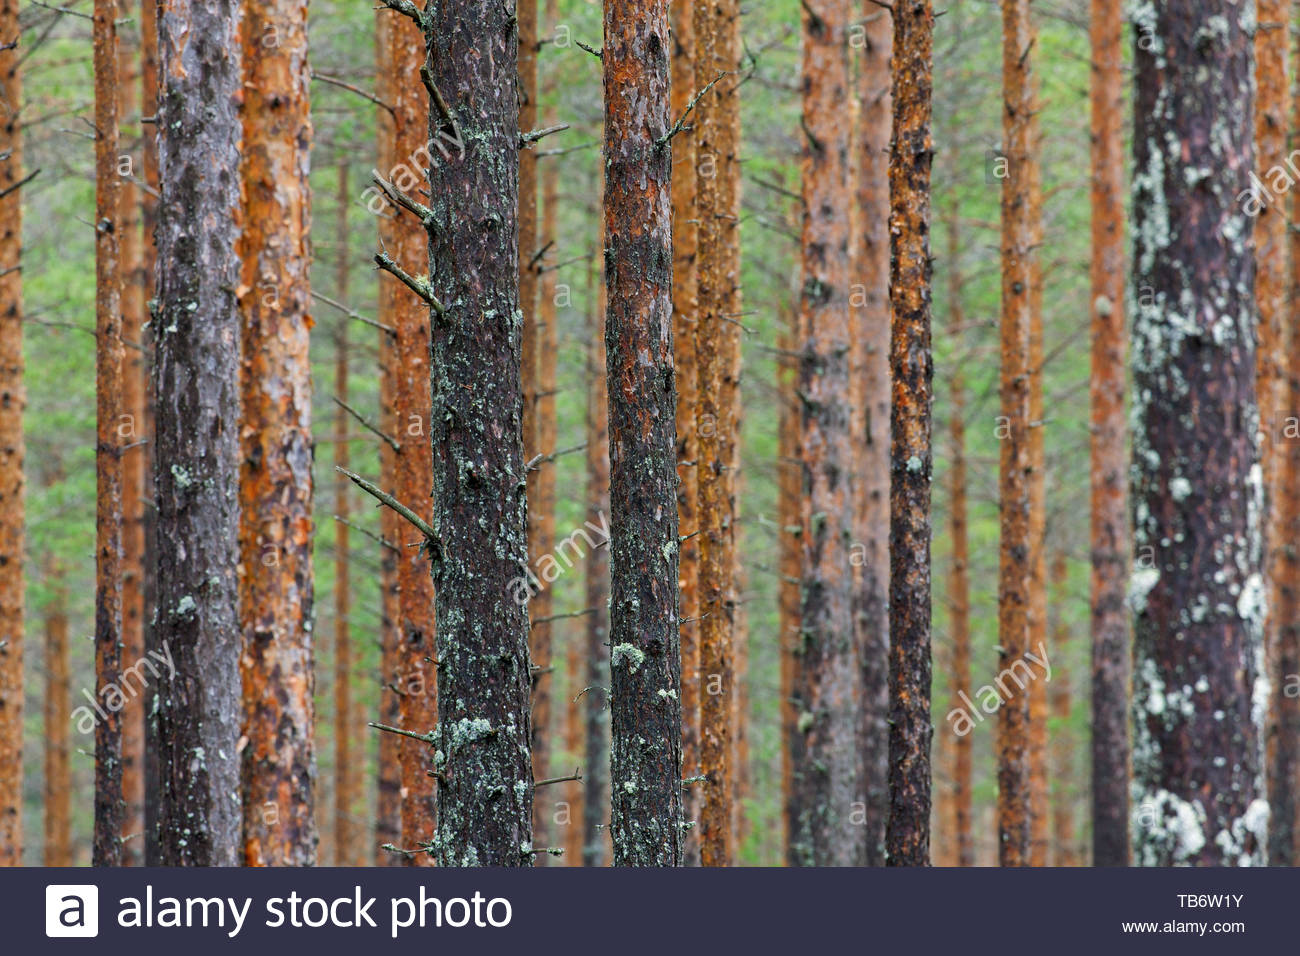 Scots Pine (Pinus sylvestris) tree trunks in coniferous forest in Sweden, Scandinavia - Stock Image